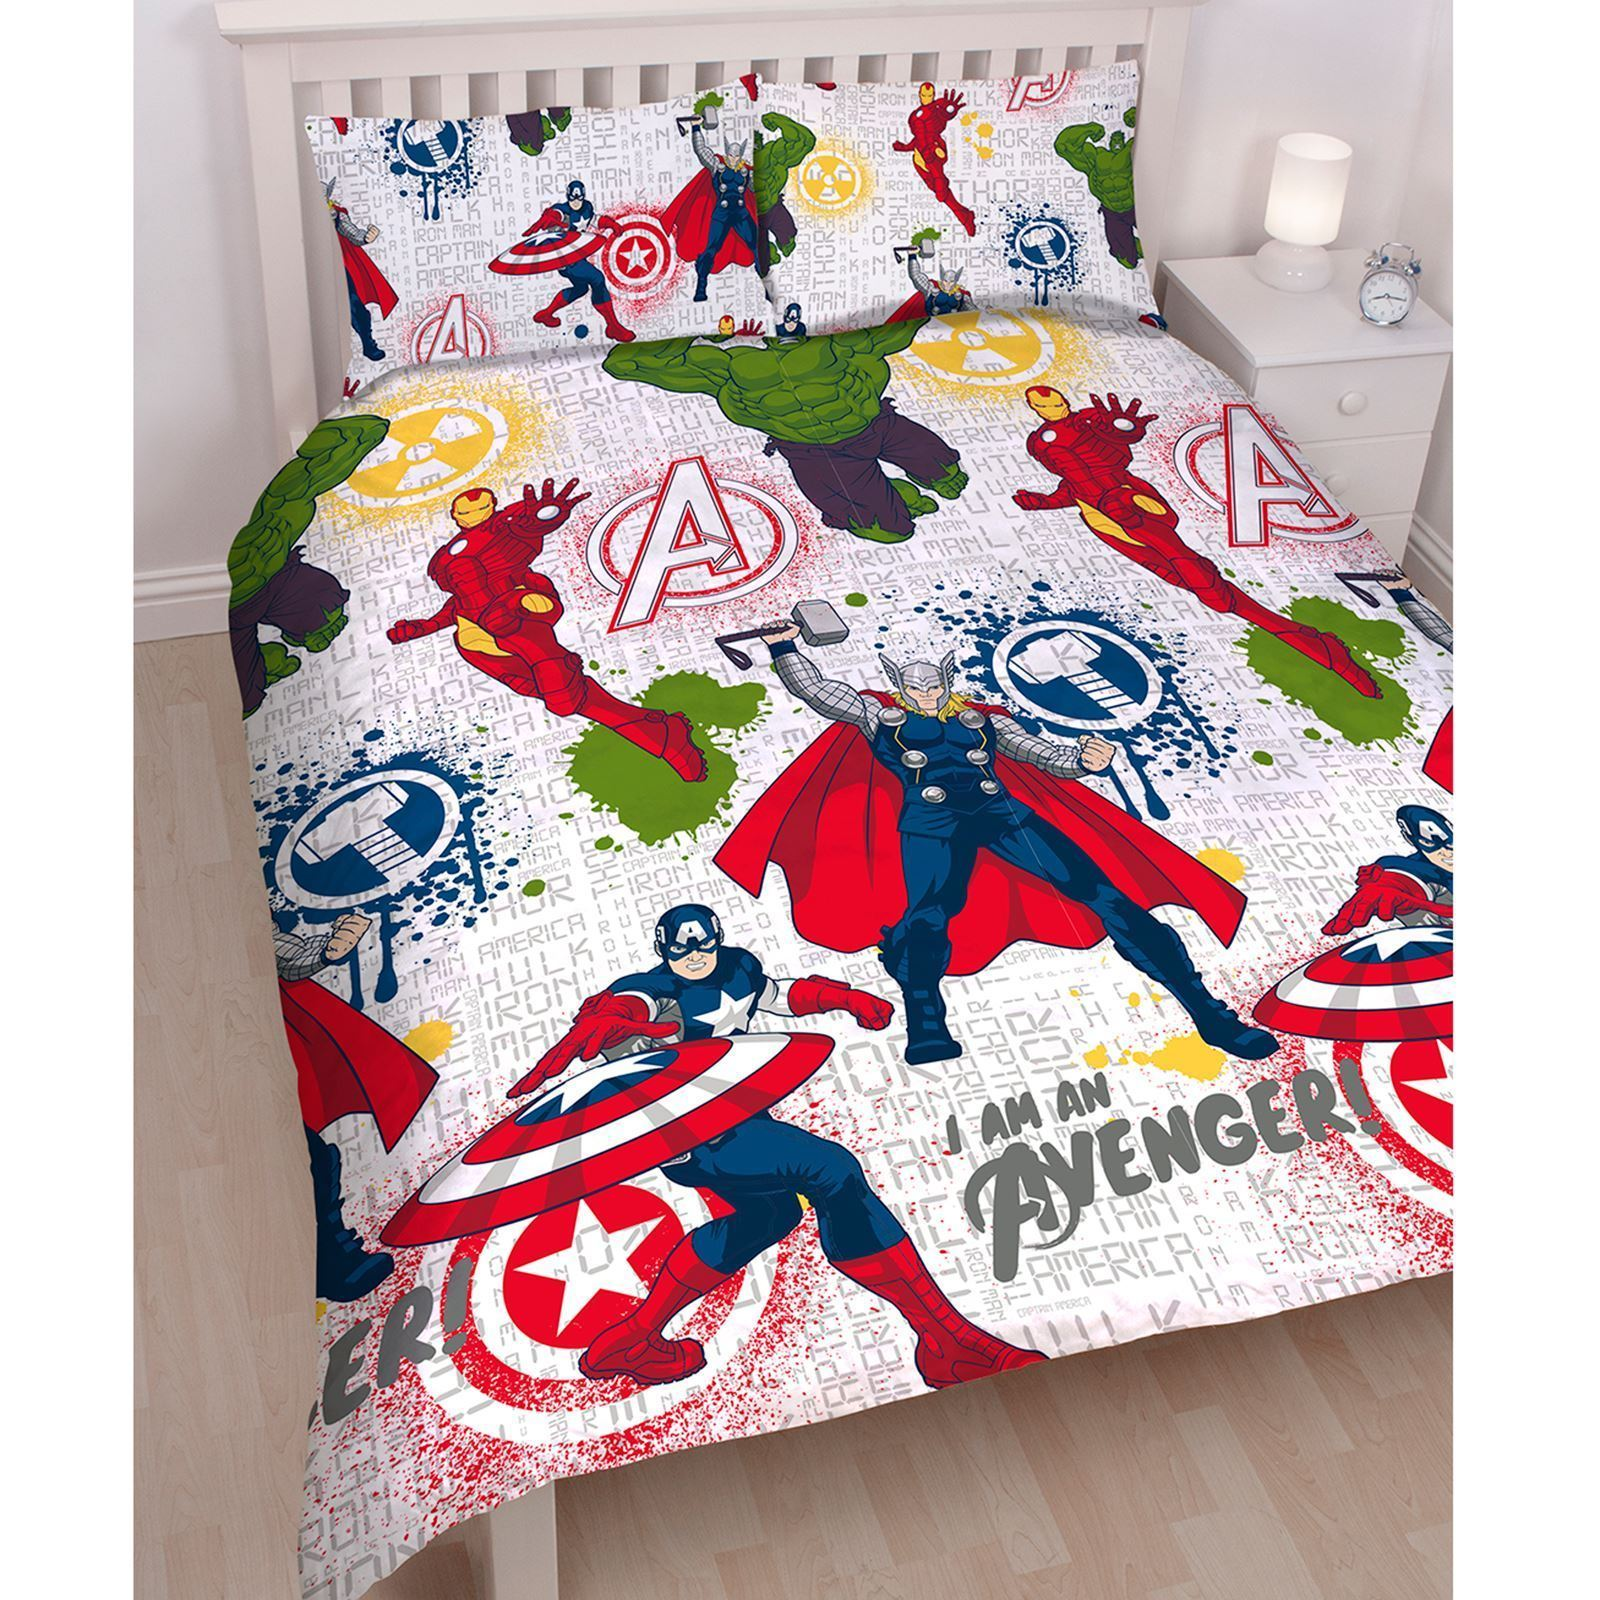 Official-Marvel-Comics-Avengers-Licensed-Duvet-Covers-Single-Double thumbnail 7